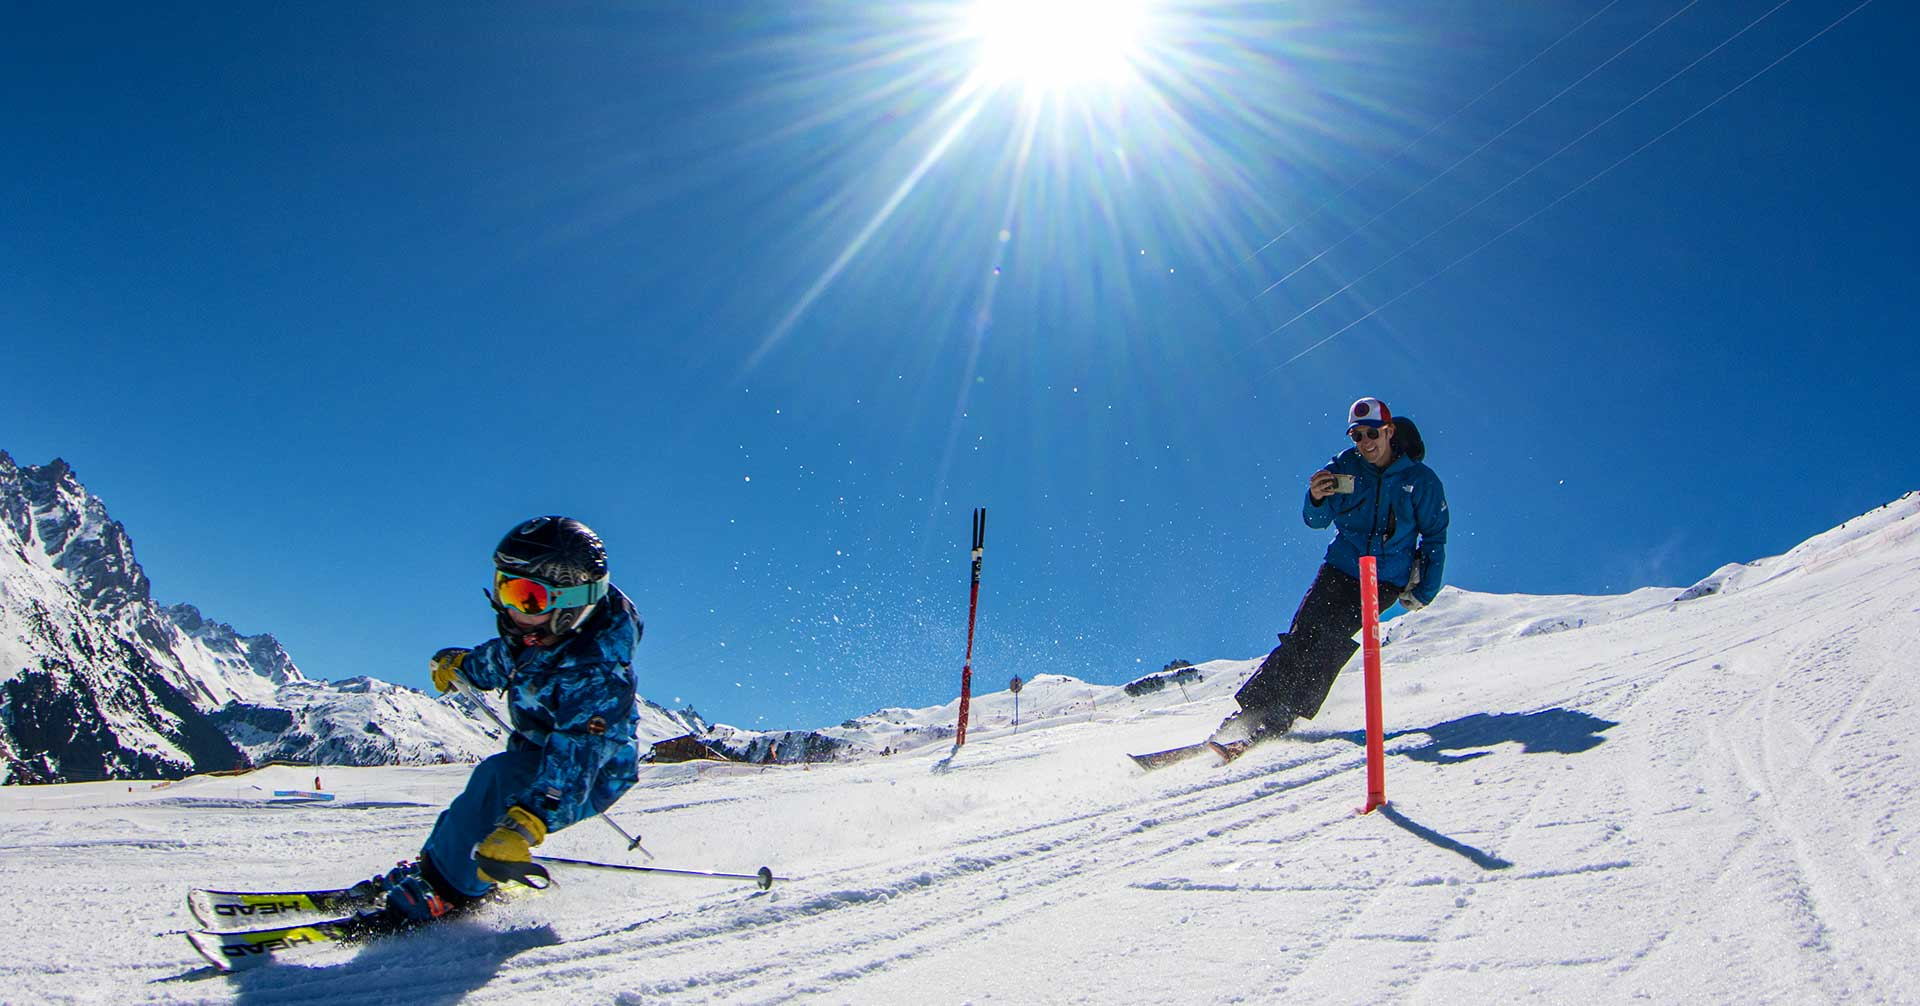 Child skiing with instructor filming behind